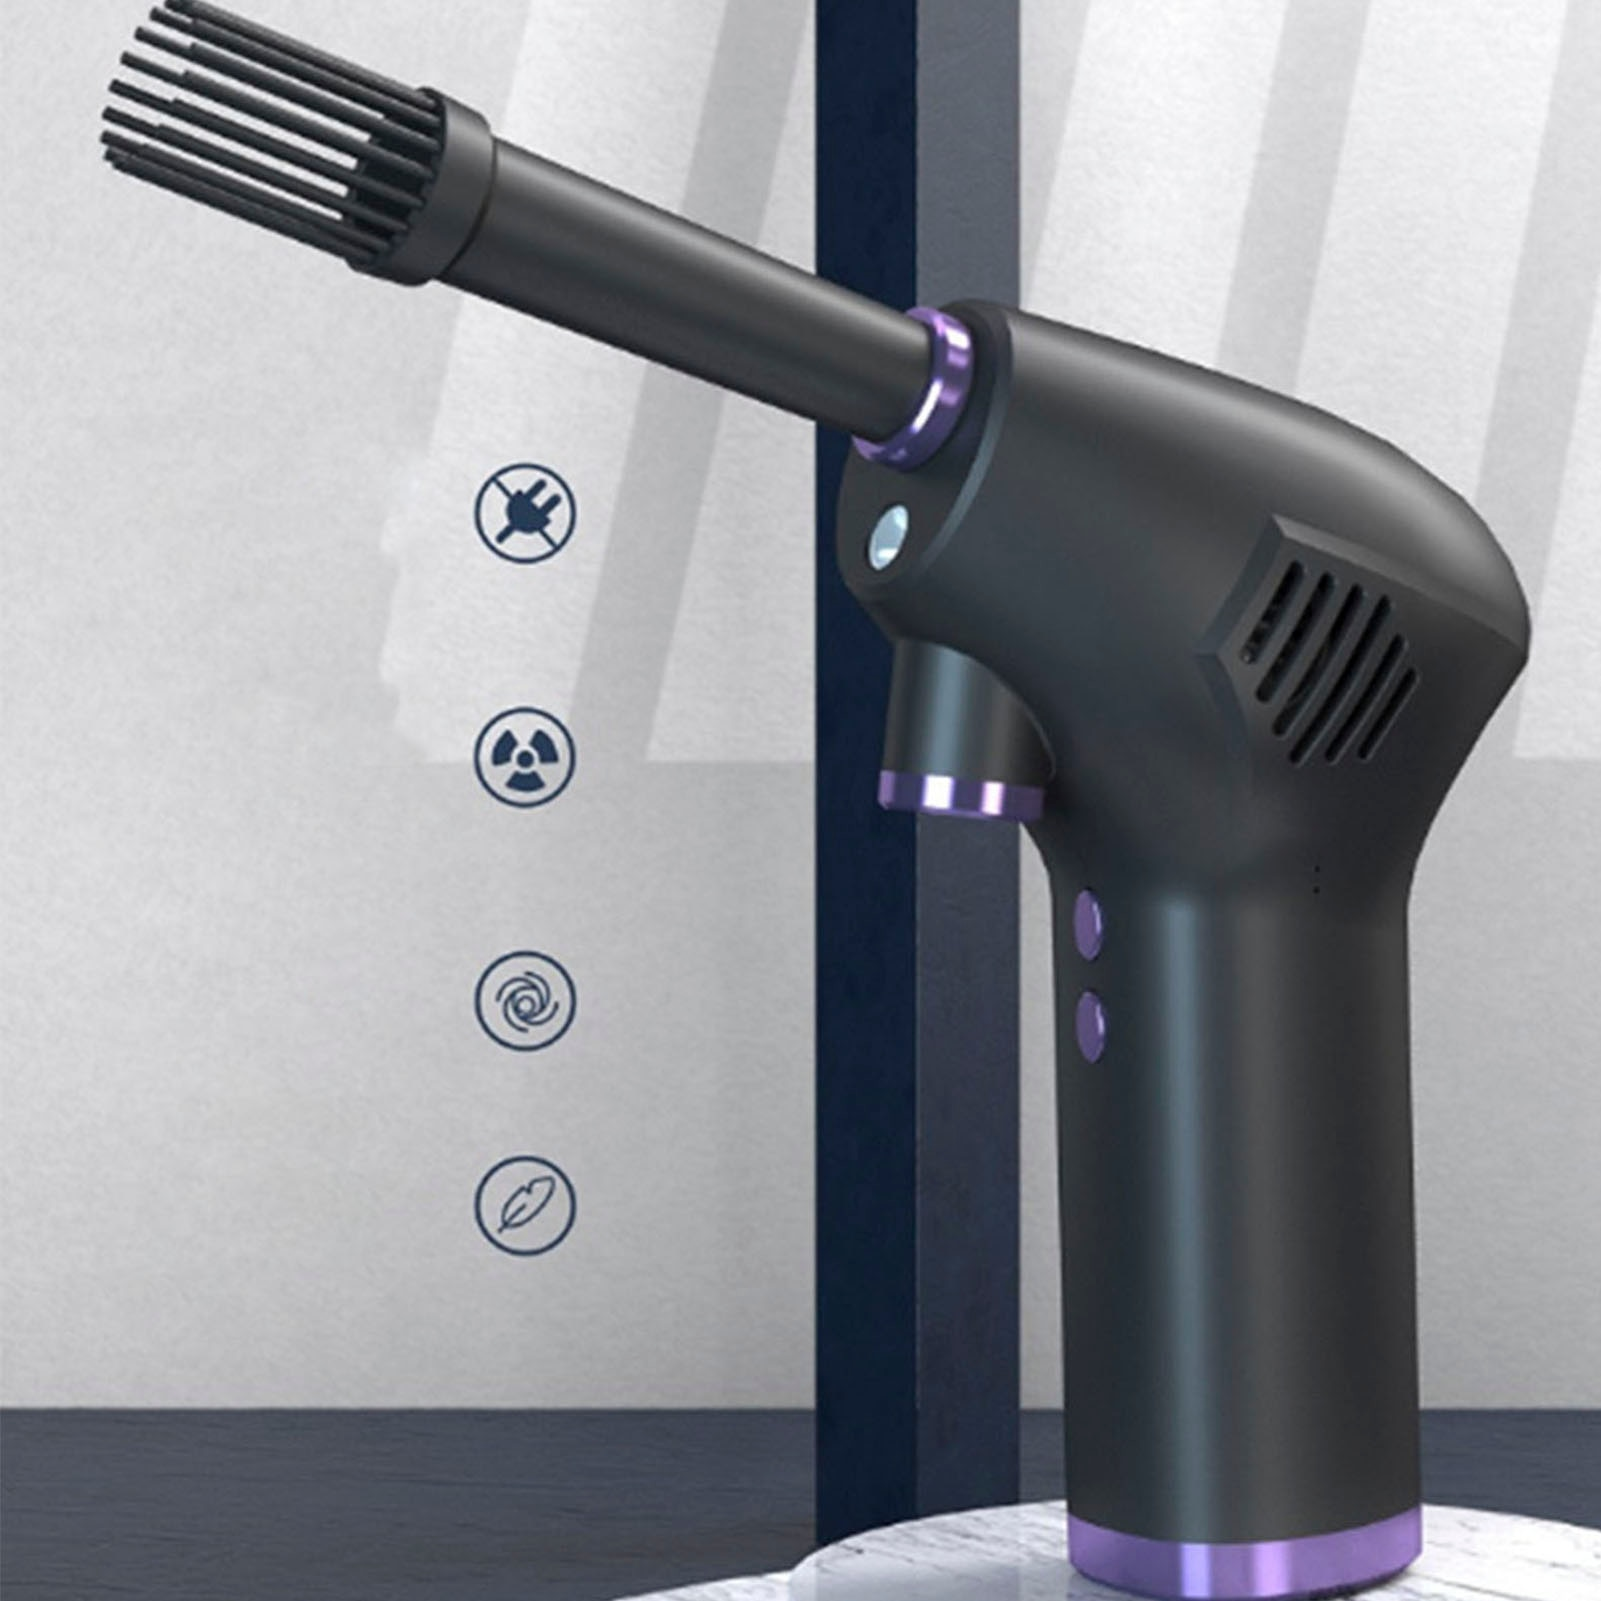 Cordless Air Duster 15000mAh Rechargeable Keyboard Cleaner Blower High-power computer air conditioner cleaning machine